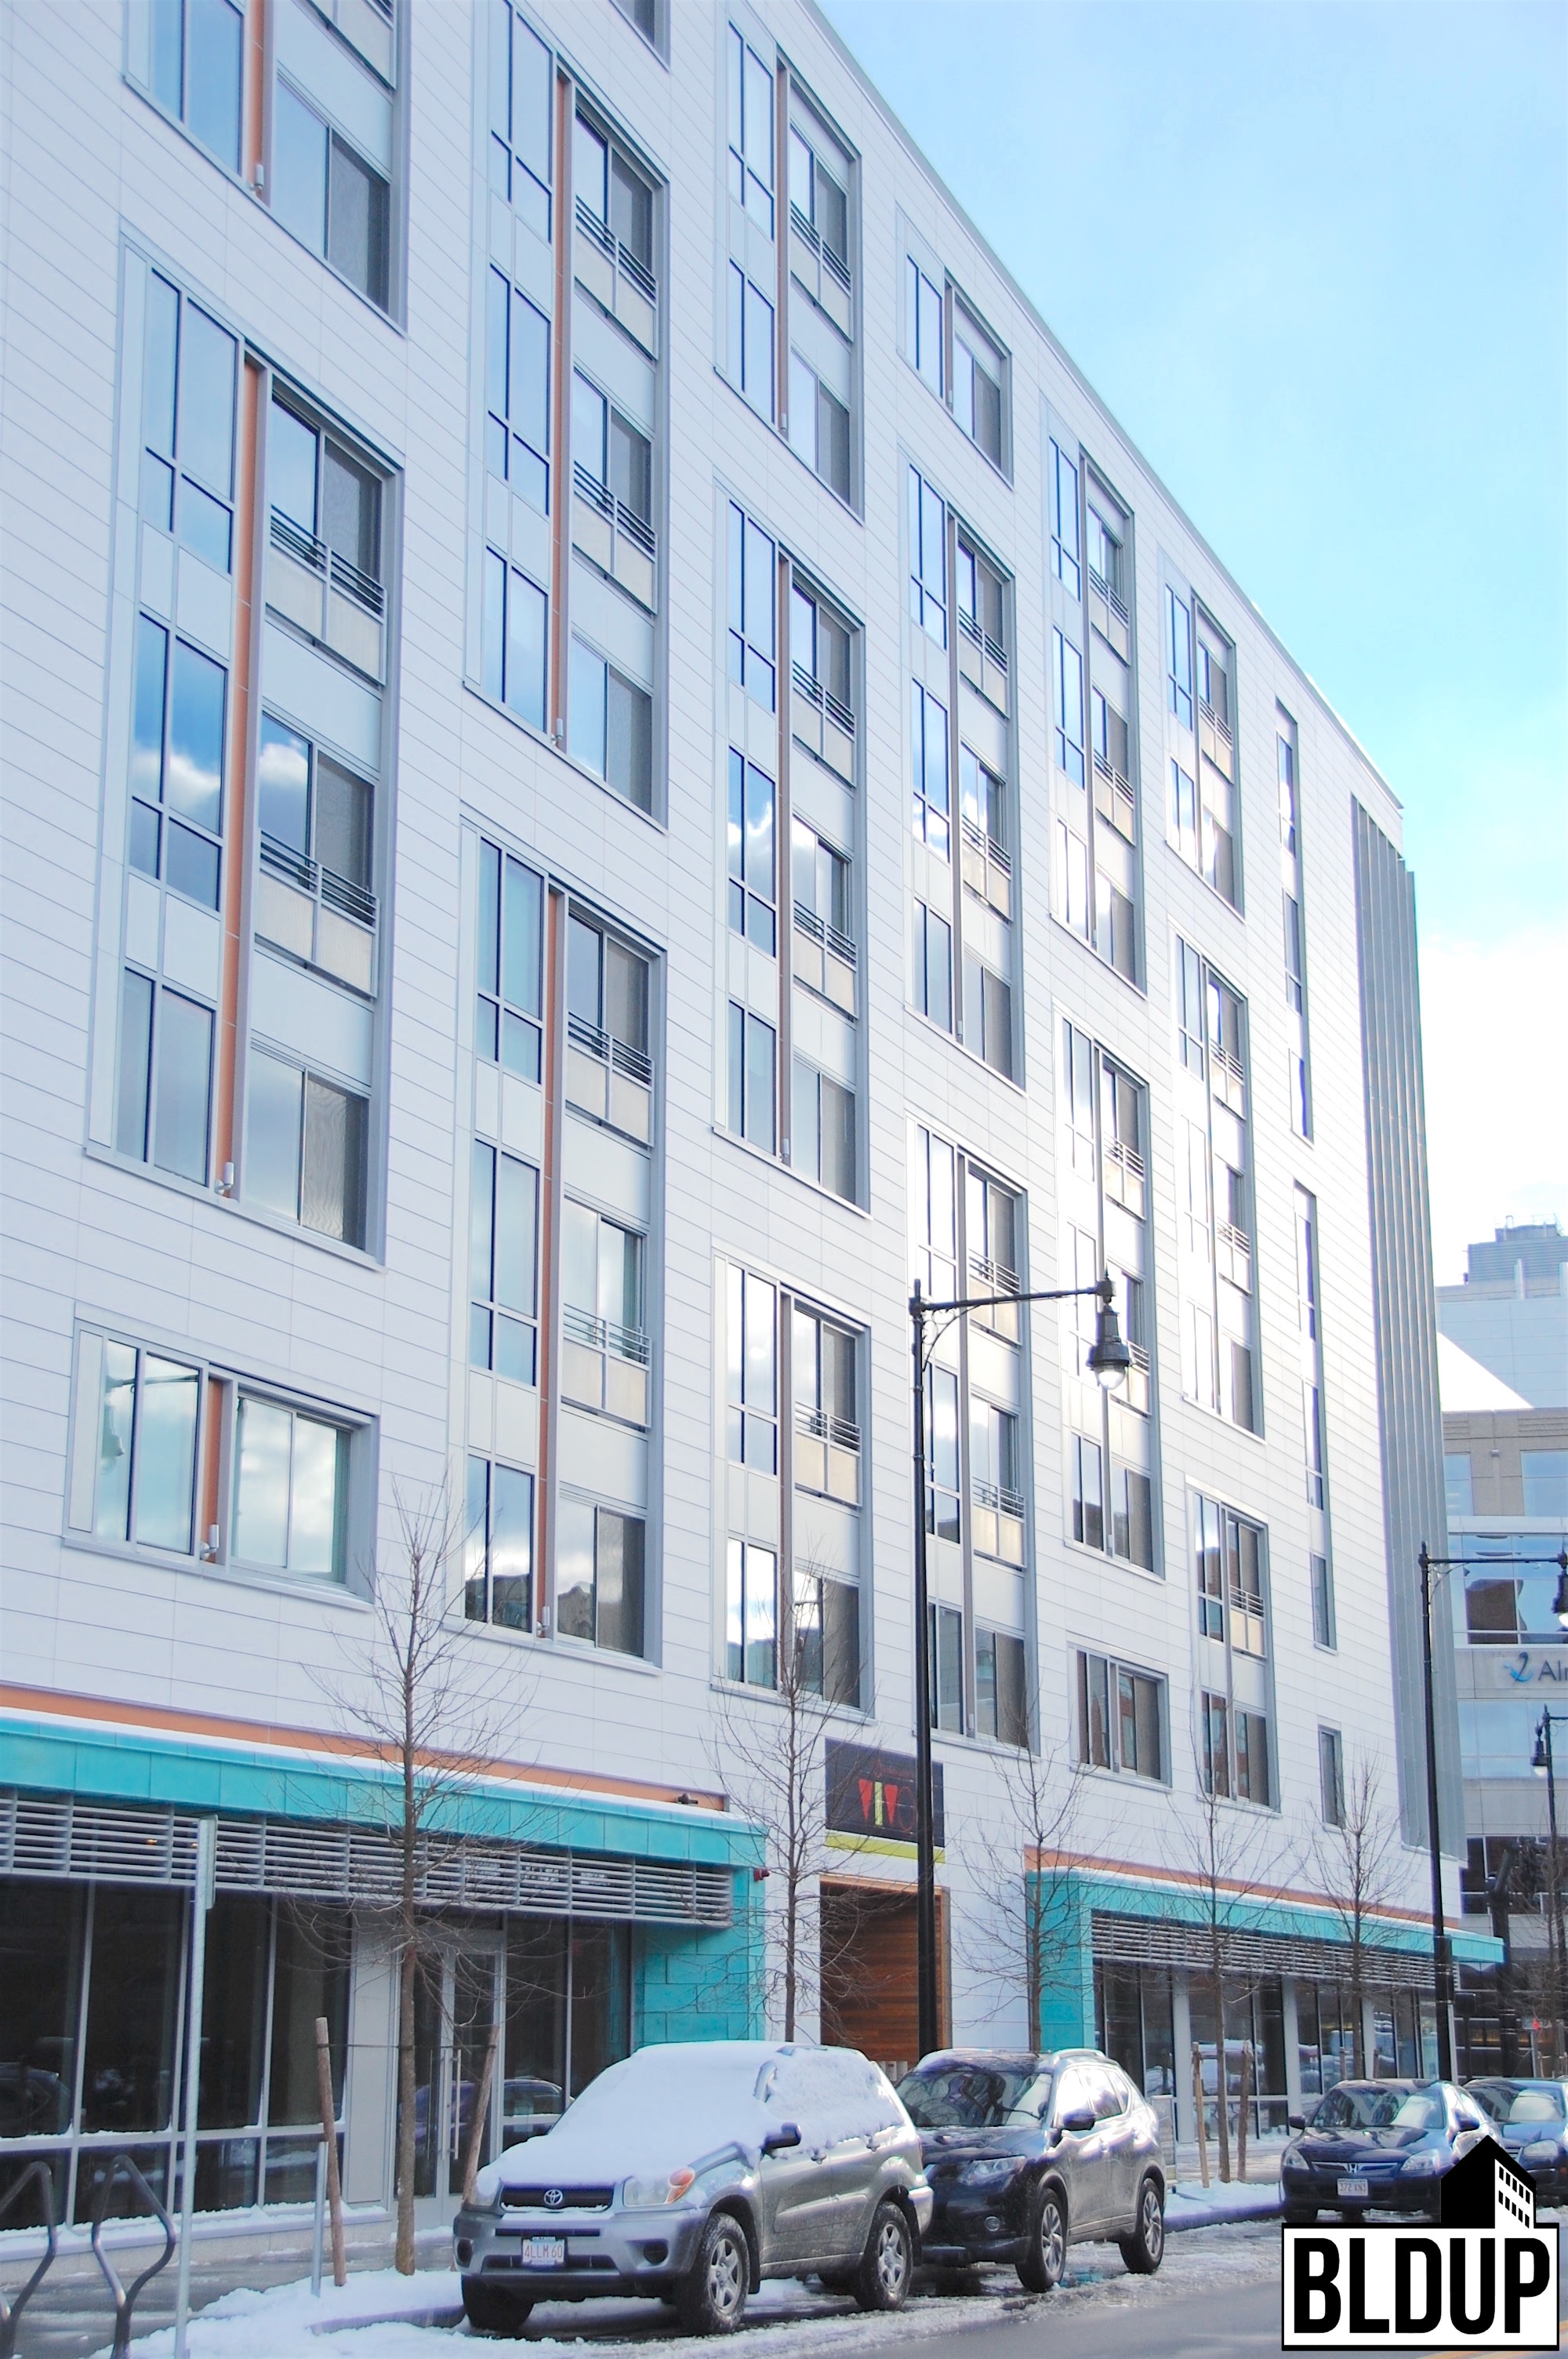 Vivo apartments 270 third street binney street kendall square residential units cambridge cambma gilbane building company construction alexandria real estate equities portfolio developer dimella shaffer architect wsp group engineer 3